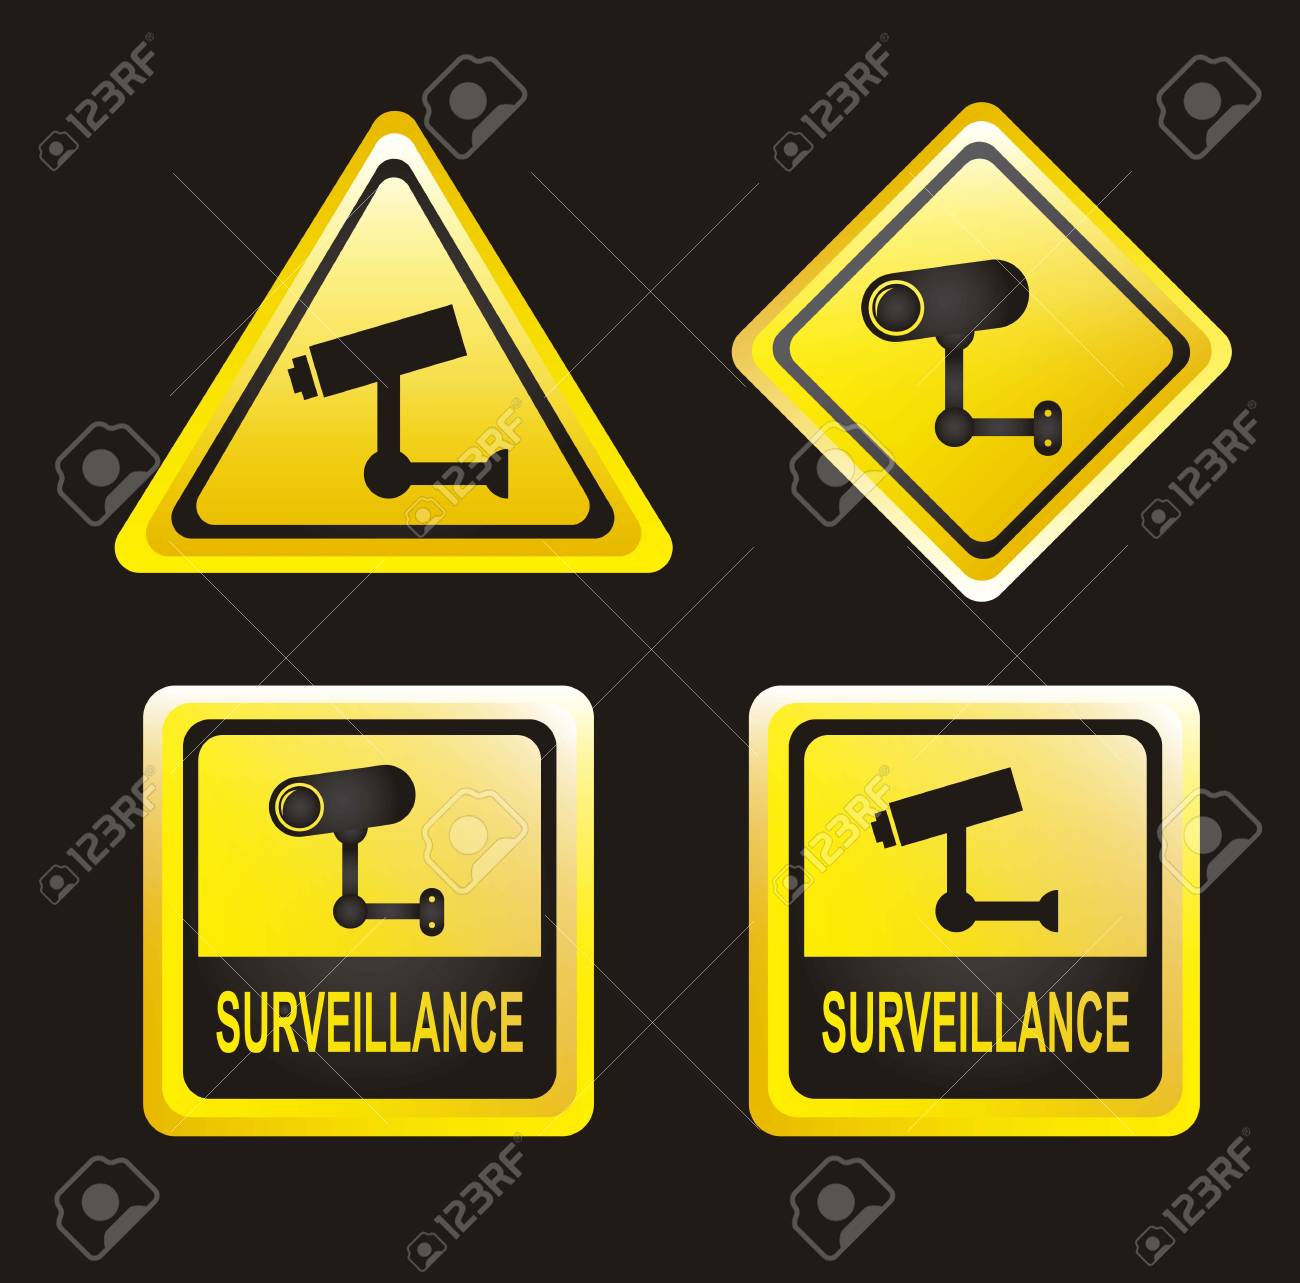 surveillance signs isolated over black background. vector illustration Stock Vector - 14944575